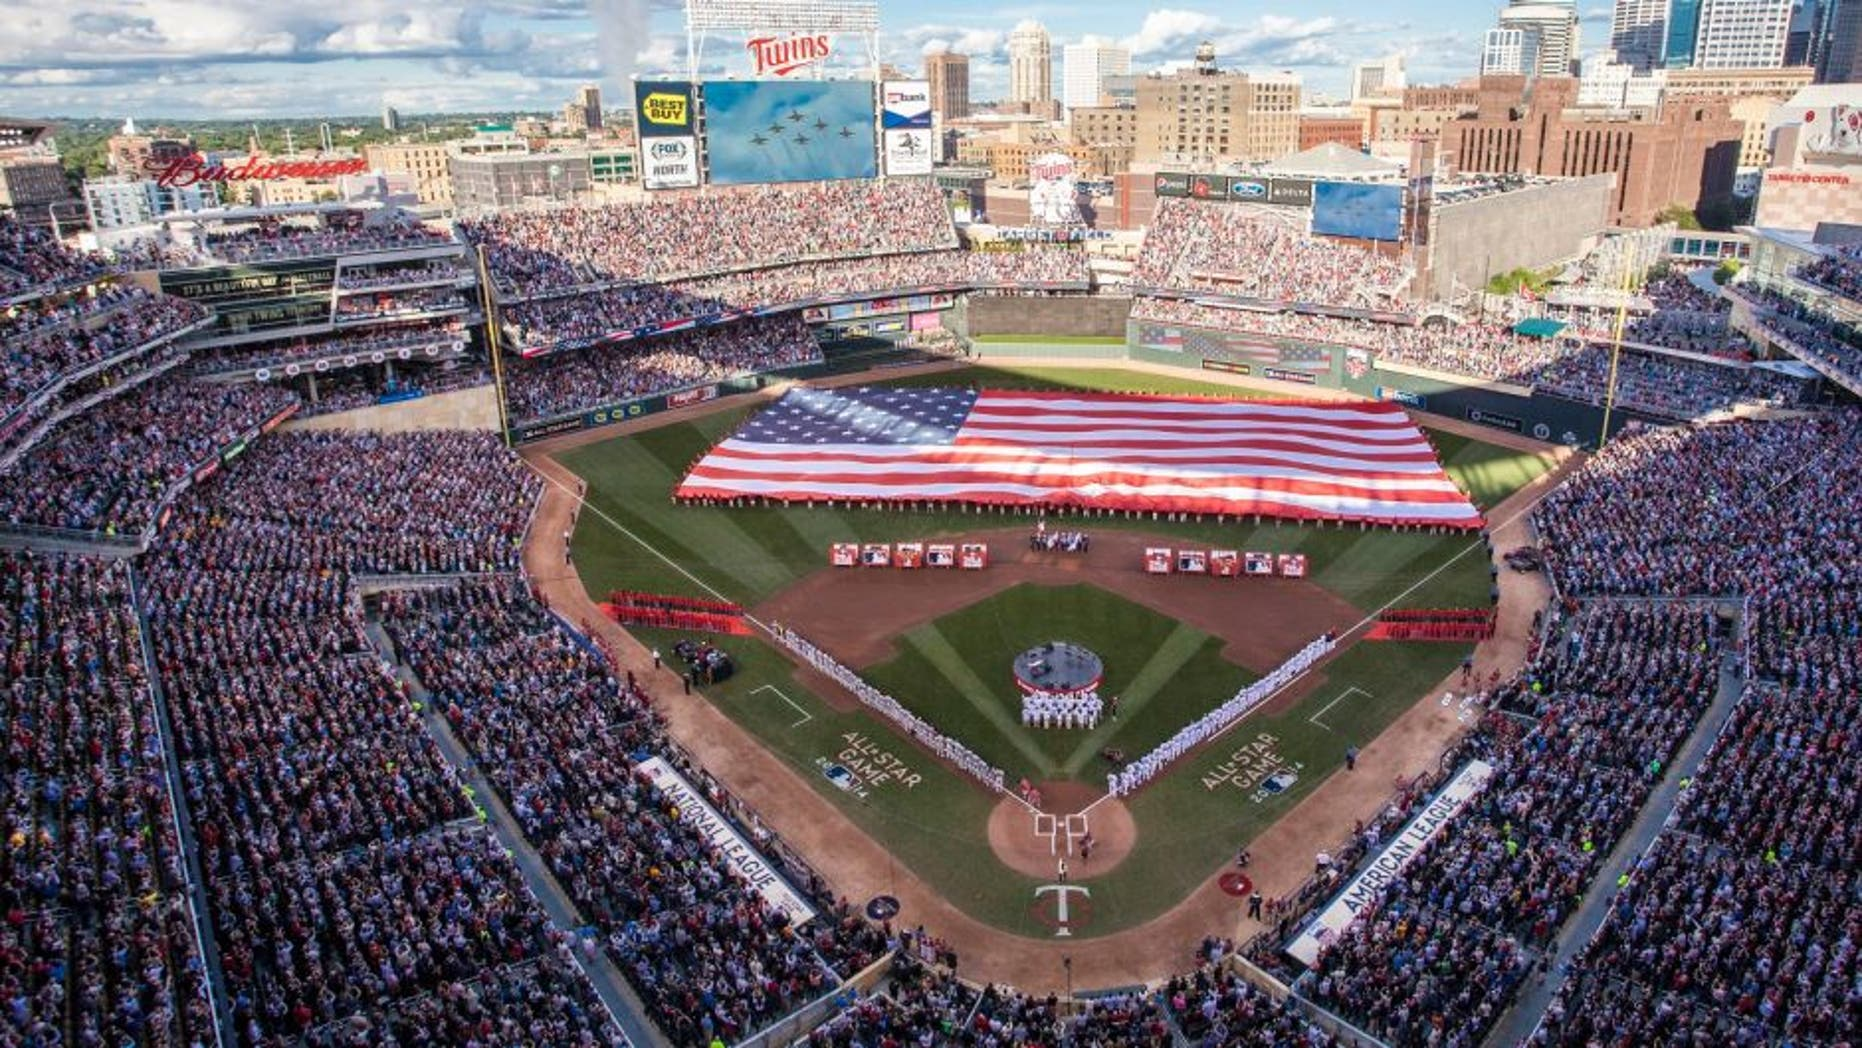 MINNEAPOLIS, MN - JULY 15: An inside view of Target Field as the Air Force Thunderbirds perform a flyover during the national anthem prior to the 85th MLB All-Star Game at Target Field on July 15, 2014 in Minneapolis, Minnesota. (Photo by Wayne Kryduba/Minnesota Twins/Getty Images)